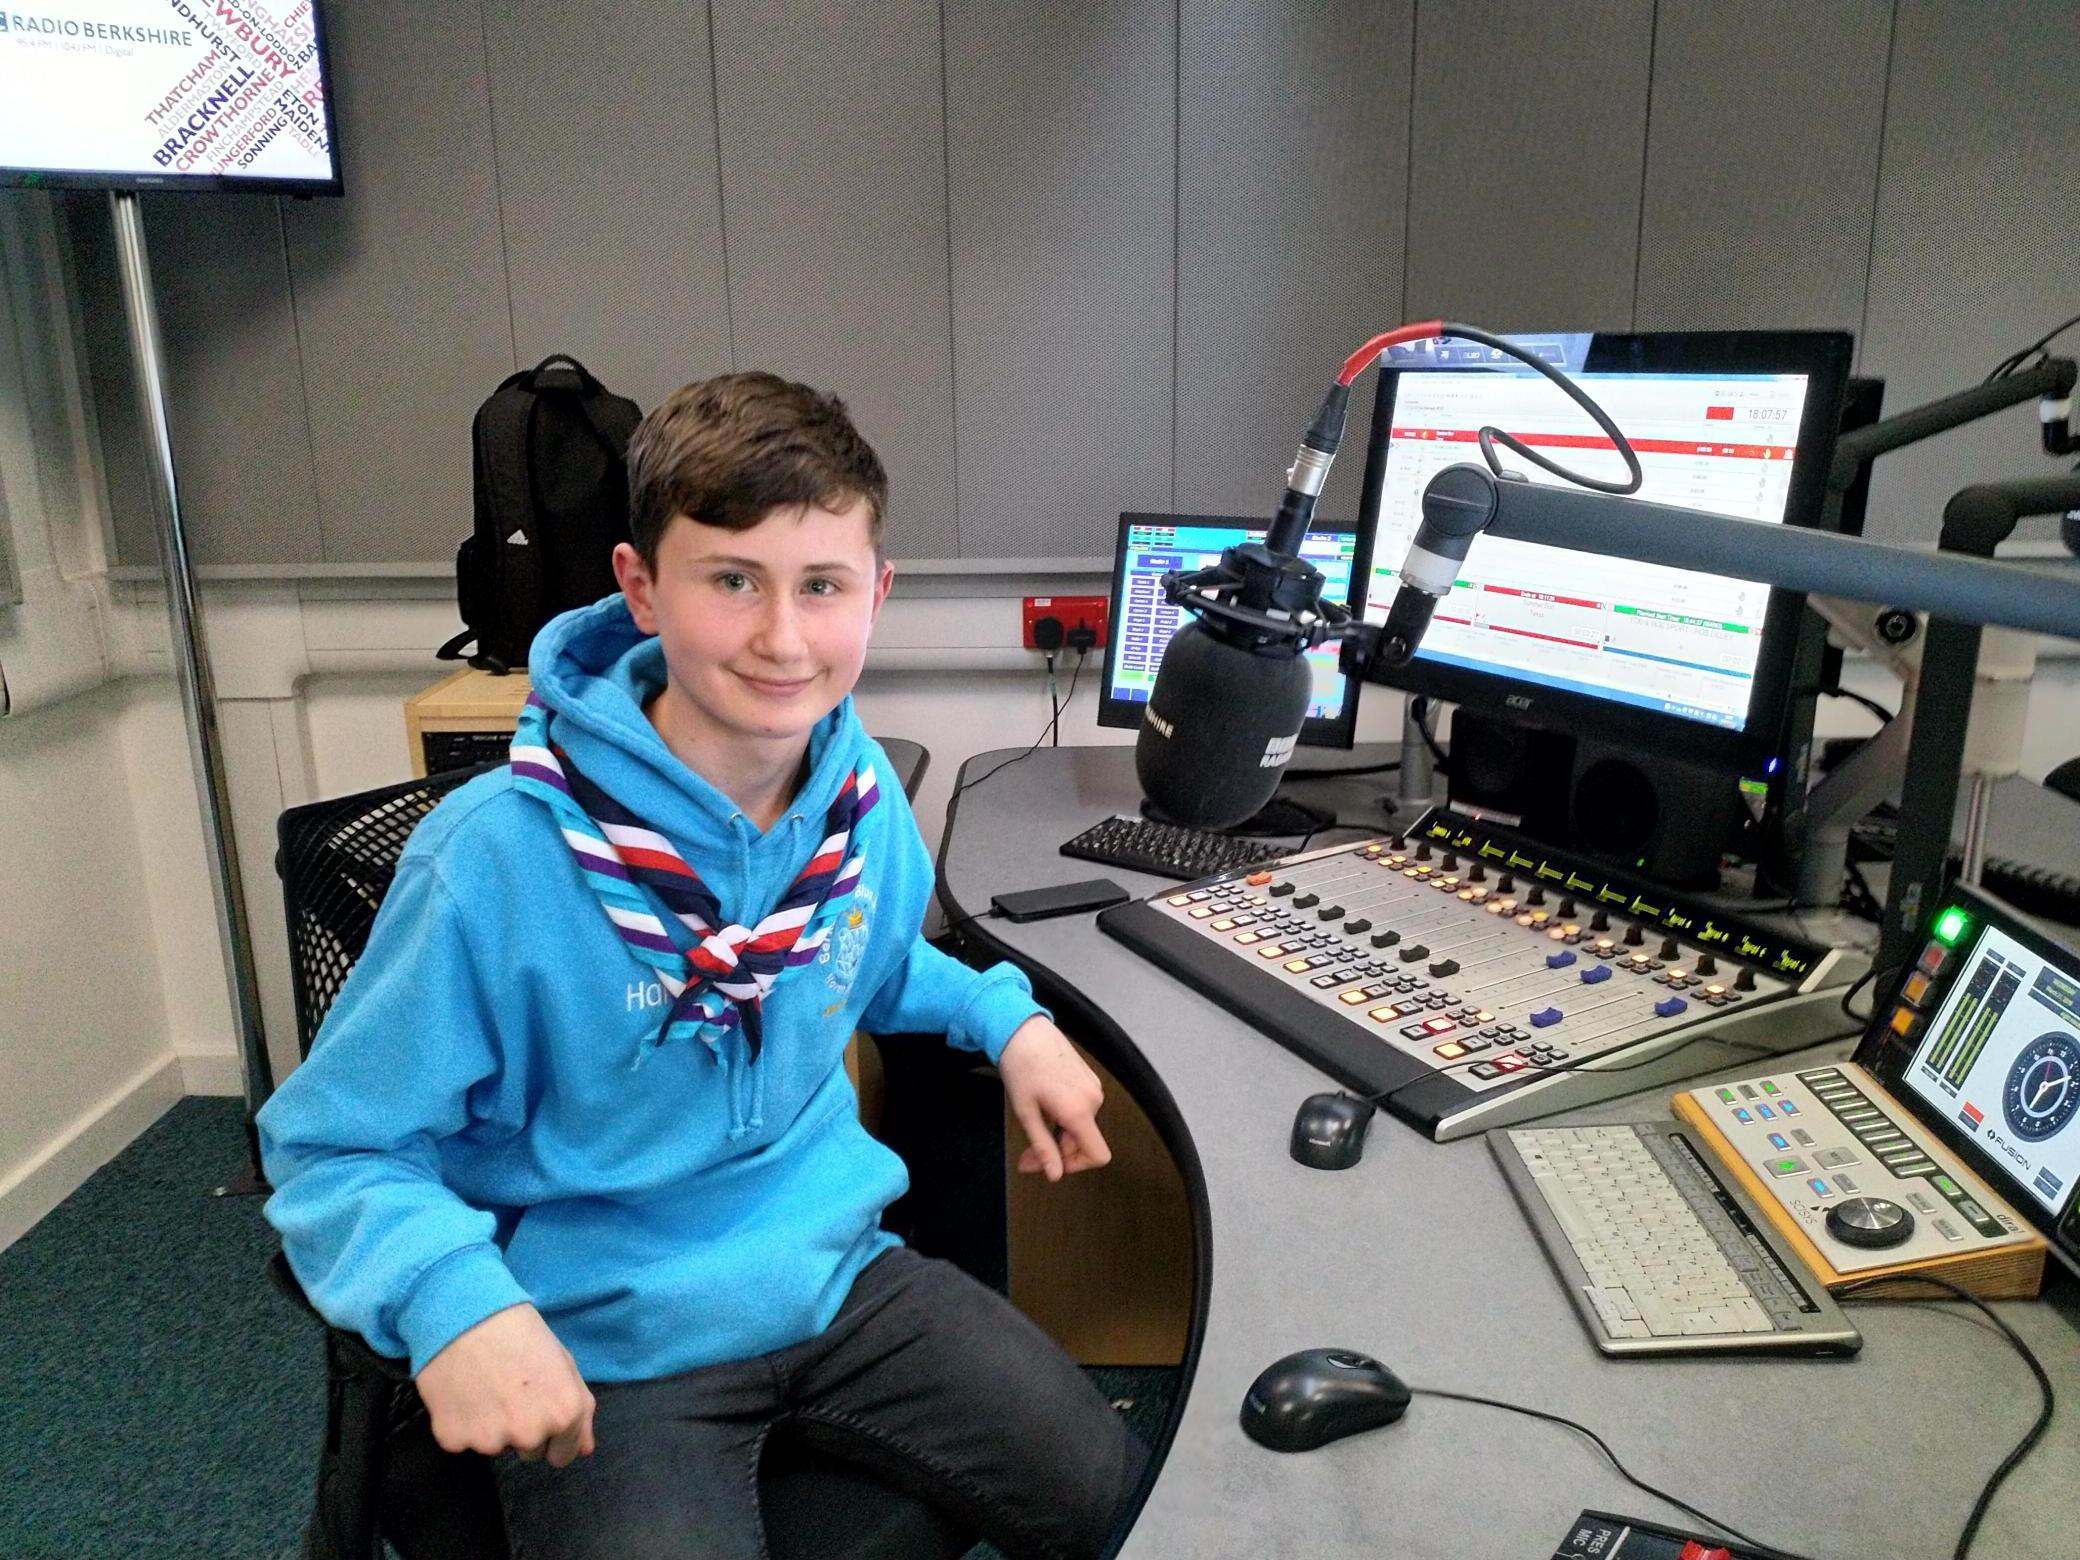 A student from a school in Wokingham has appeared on BBC Radio Berkshire after raising money to go on a trip to America.